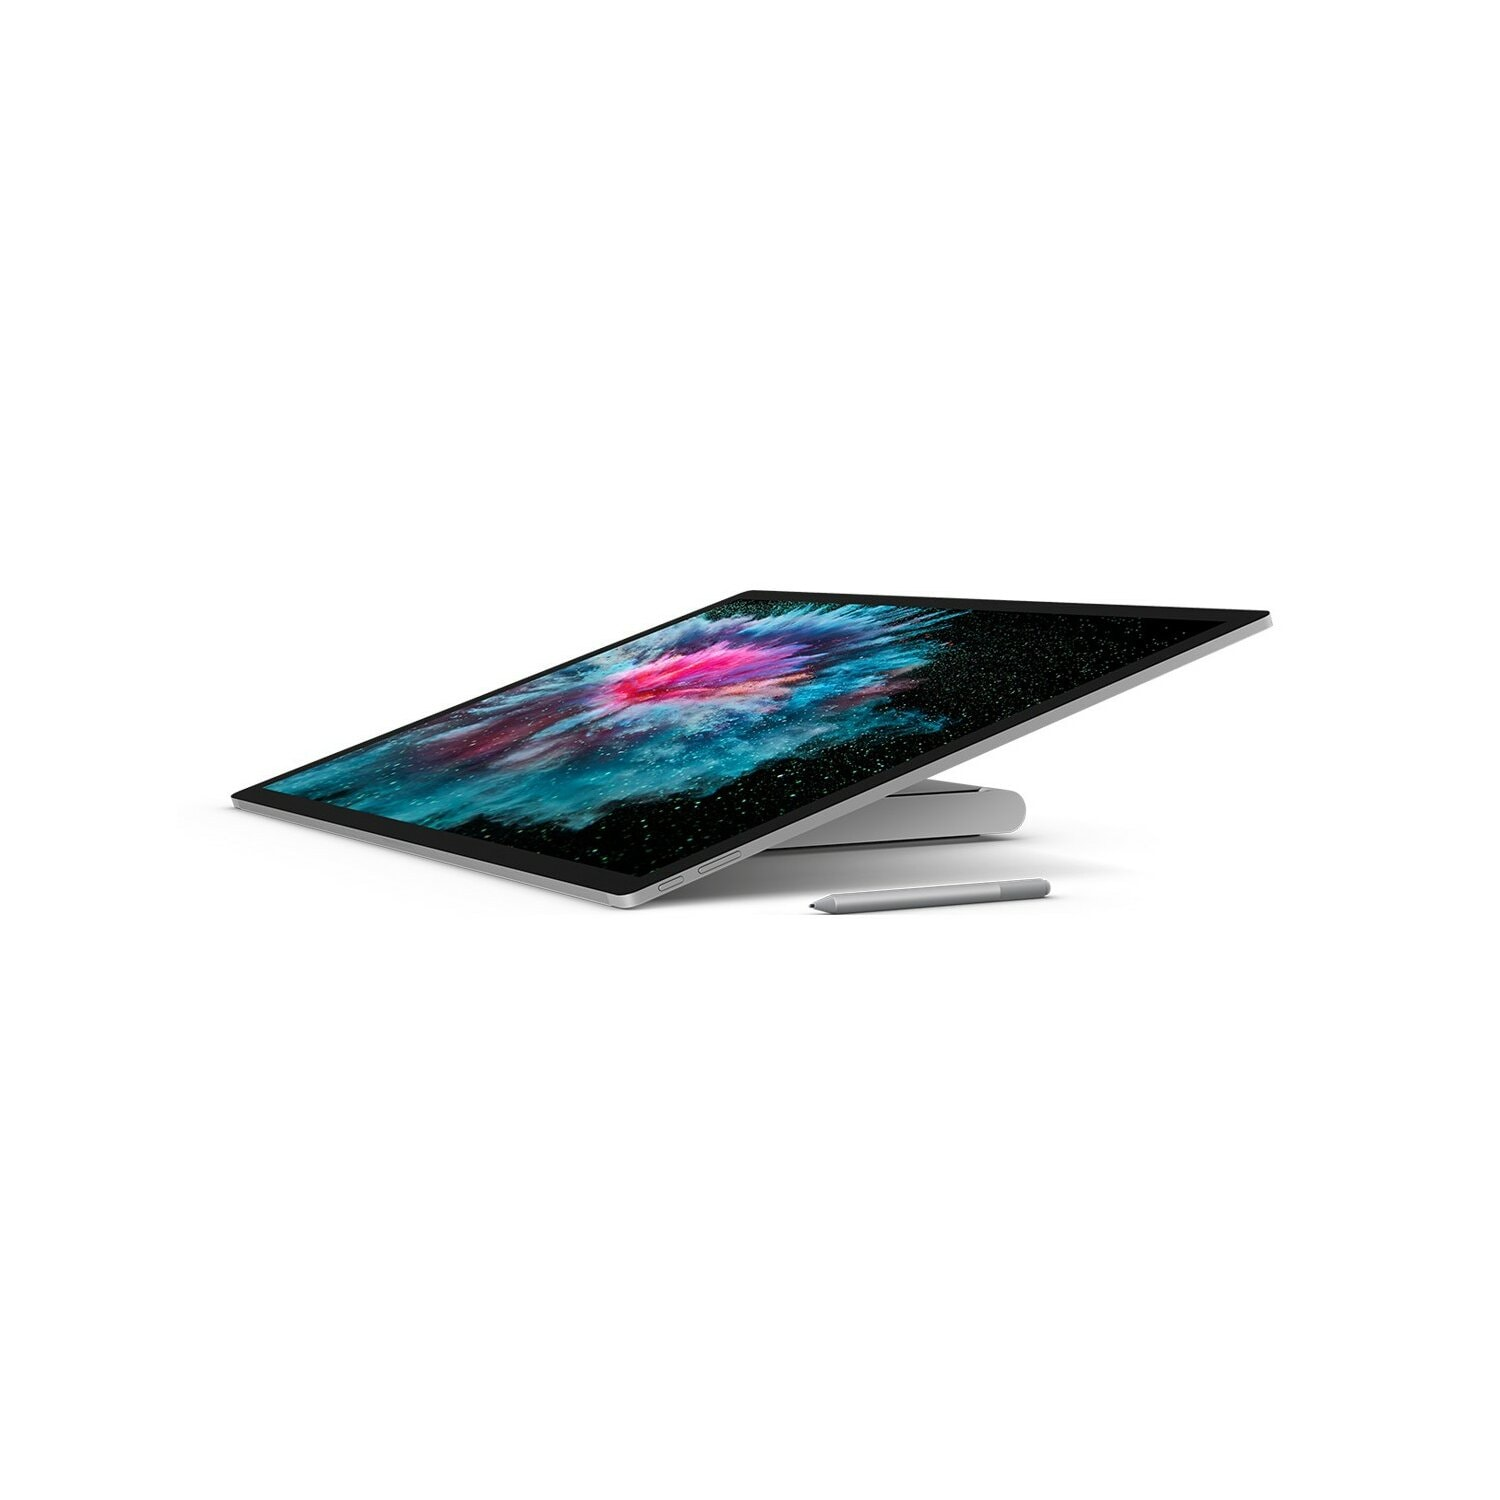 Komputer All-in-One MICROSOFT Surface Studio 2 i7-7820HQ/32GB/1TB/GTX1070/Win10Pro